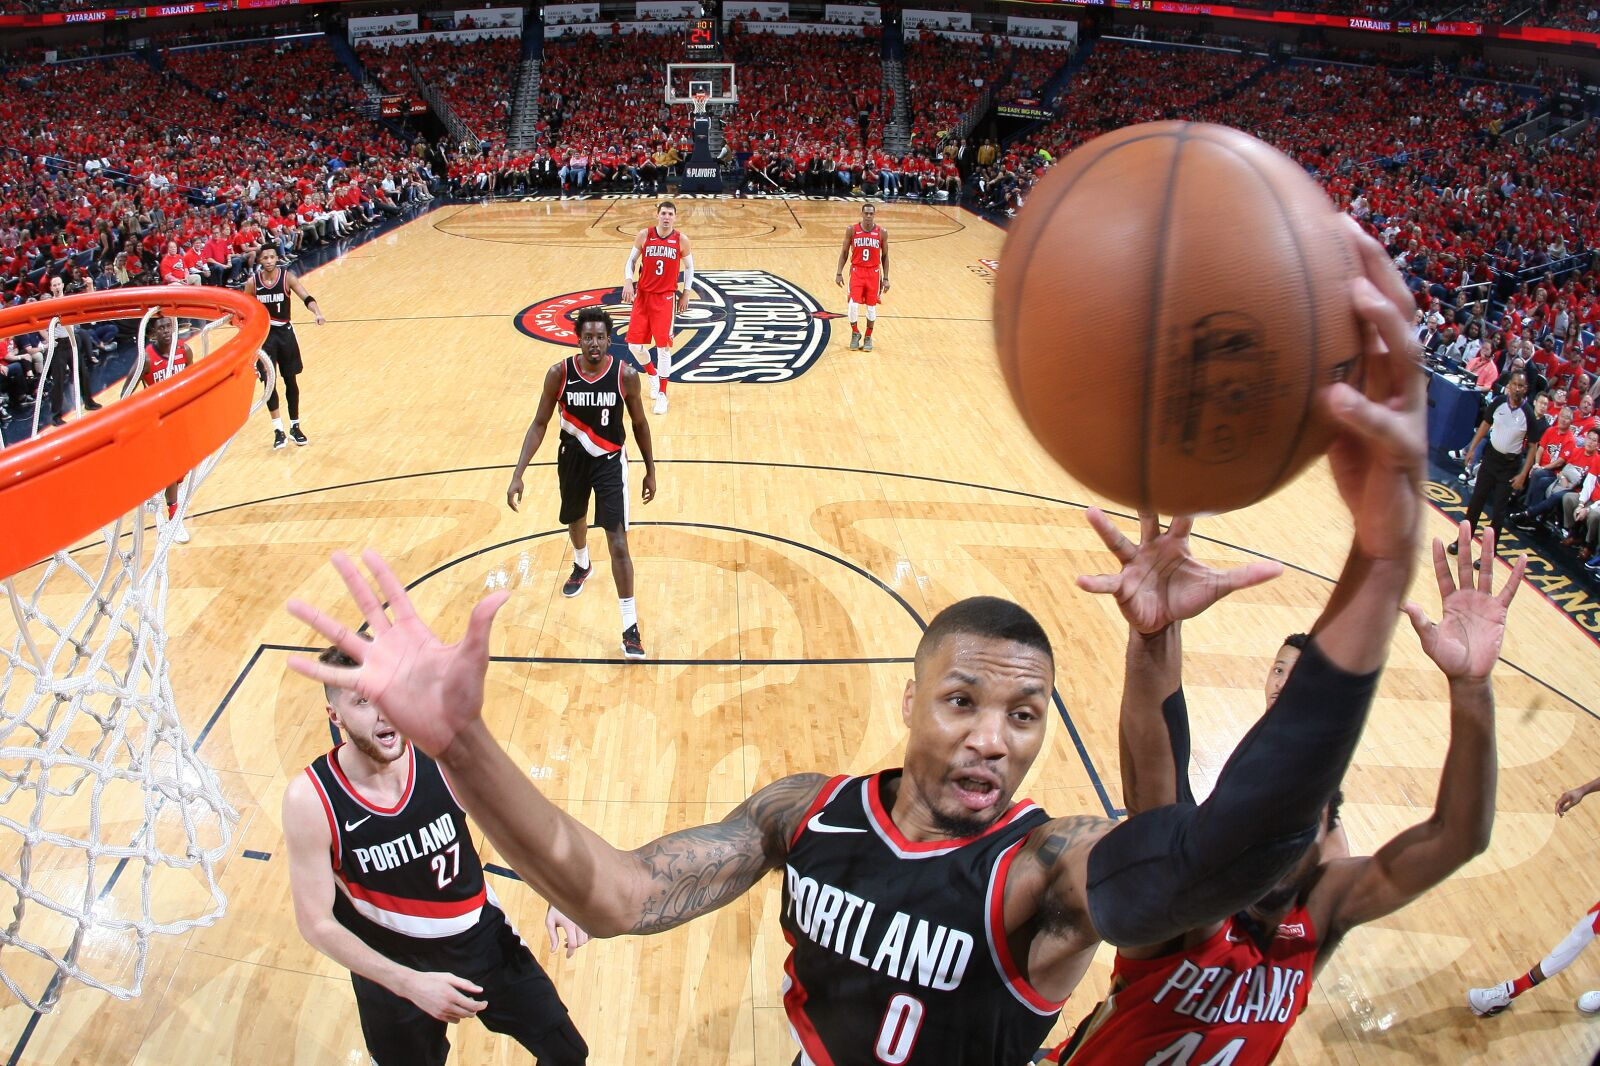 949709478-portland-trail-blazers-v-new-orleans-pelicans-game-four.jpg